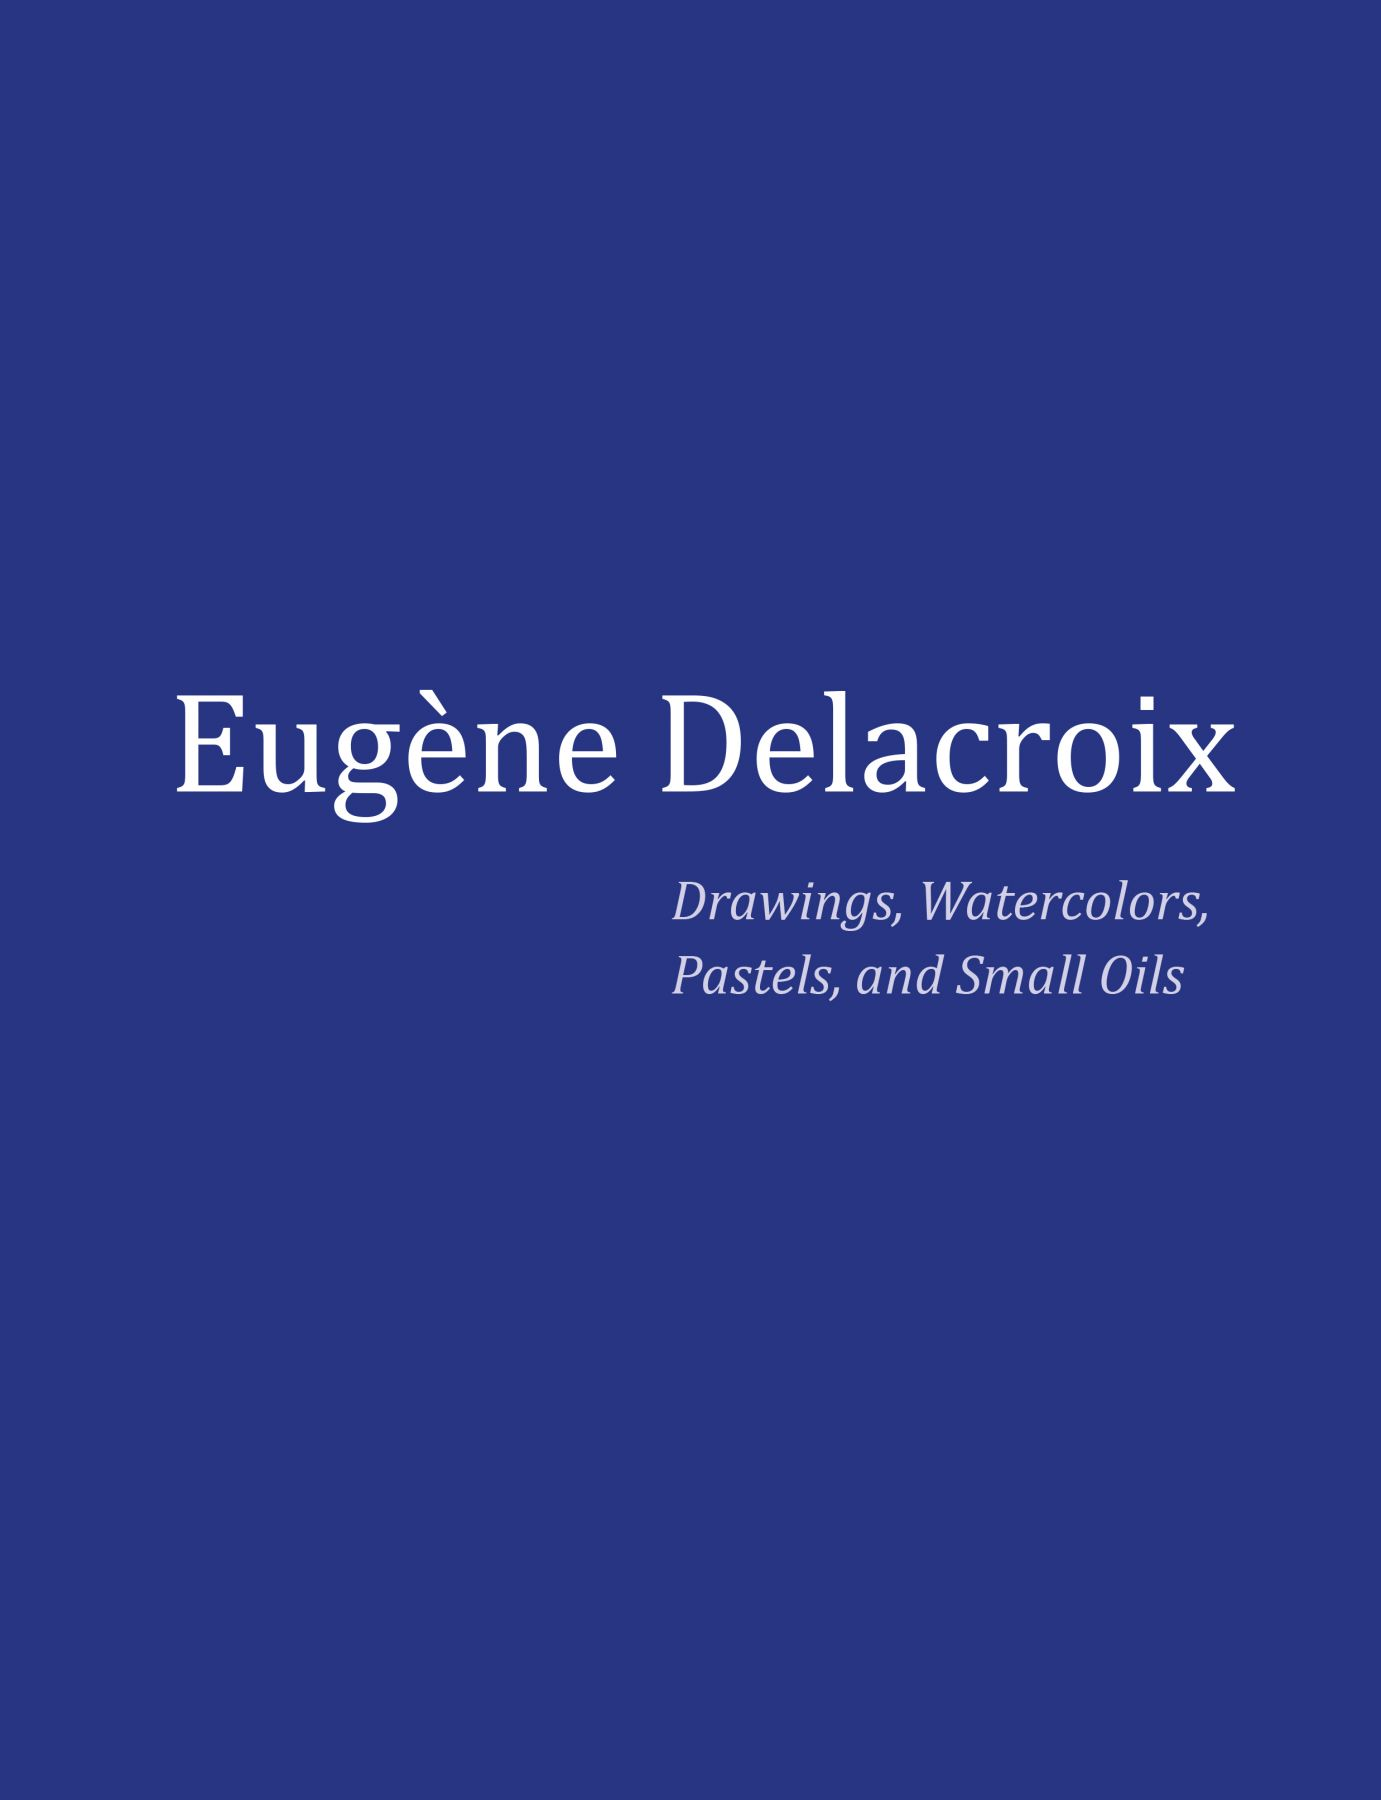 Eugène Delacroix: Drawings, Watercolors, Pastels, and Small Oils